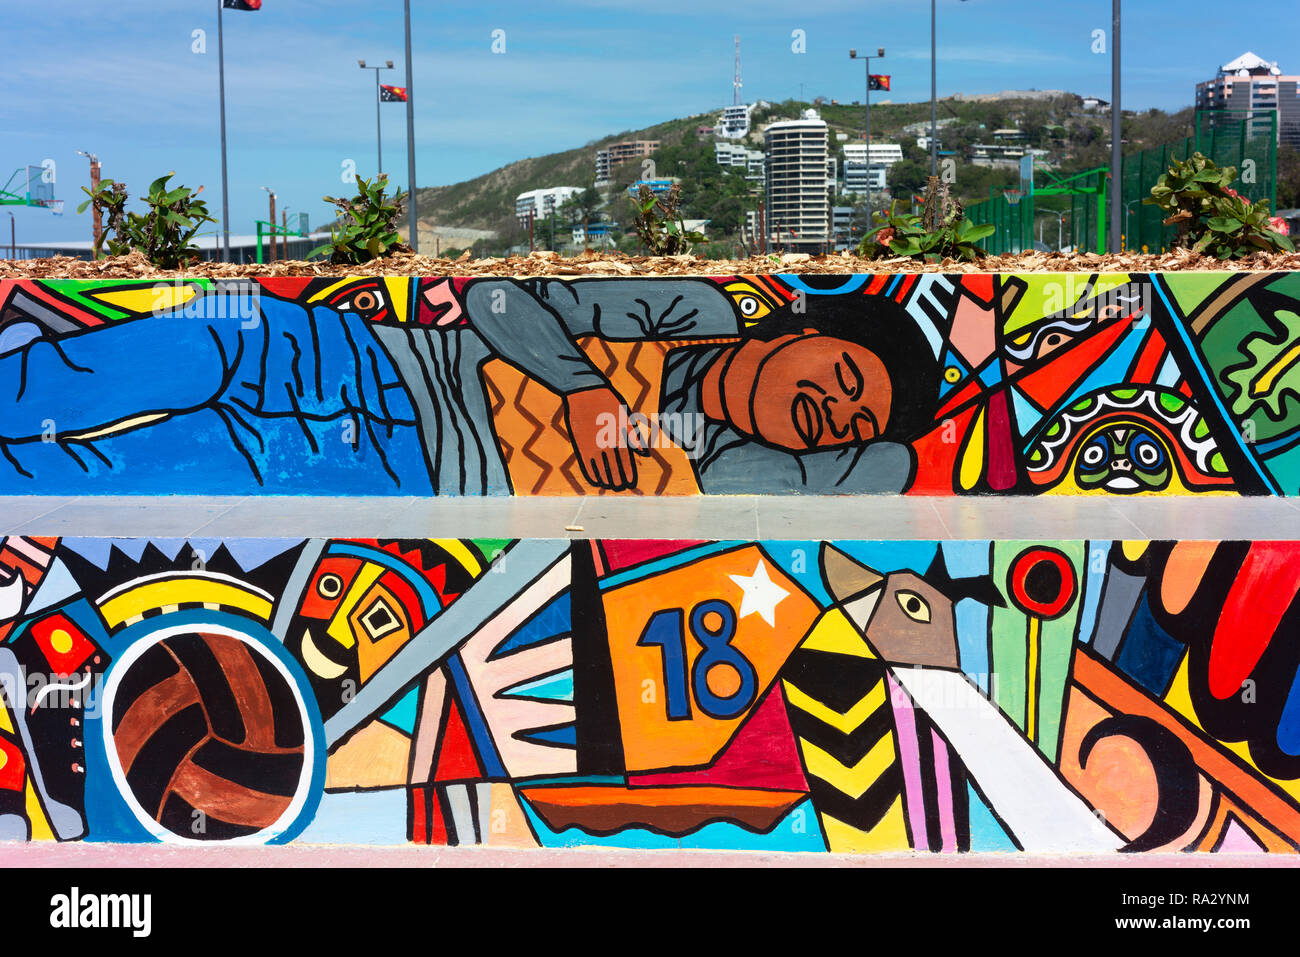 Sports grounds and other facilities decorated with contemporary art at the newly refurbished Ela Beach in Port Moresby. - Stock Image